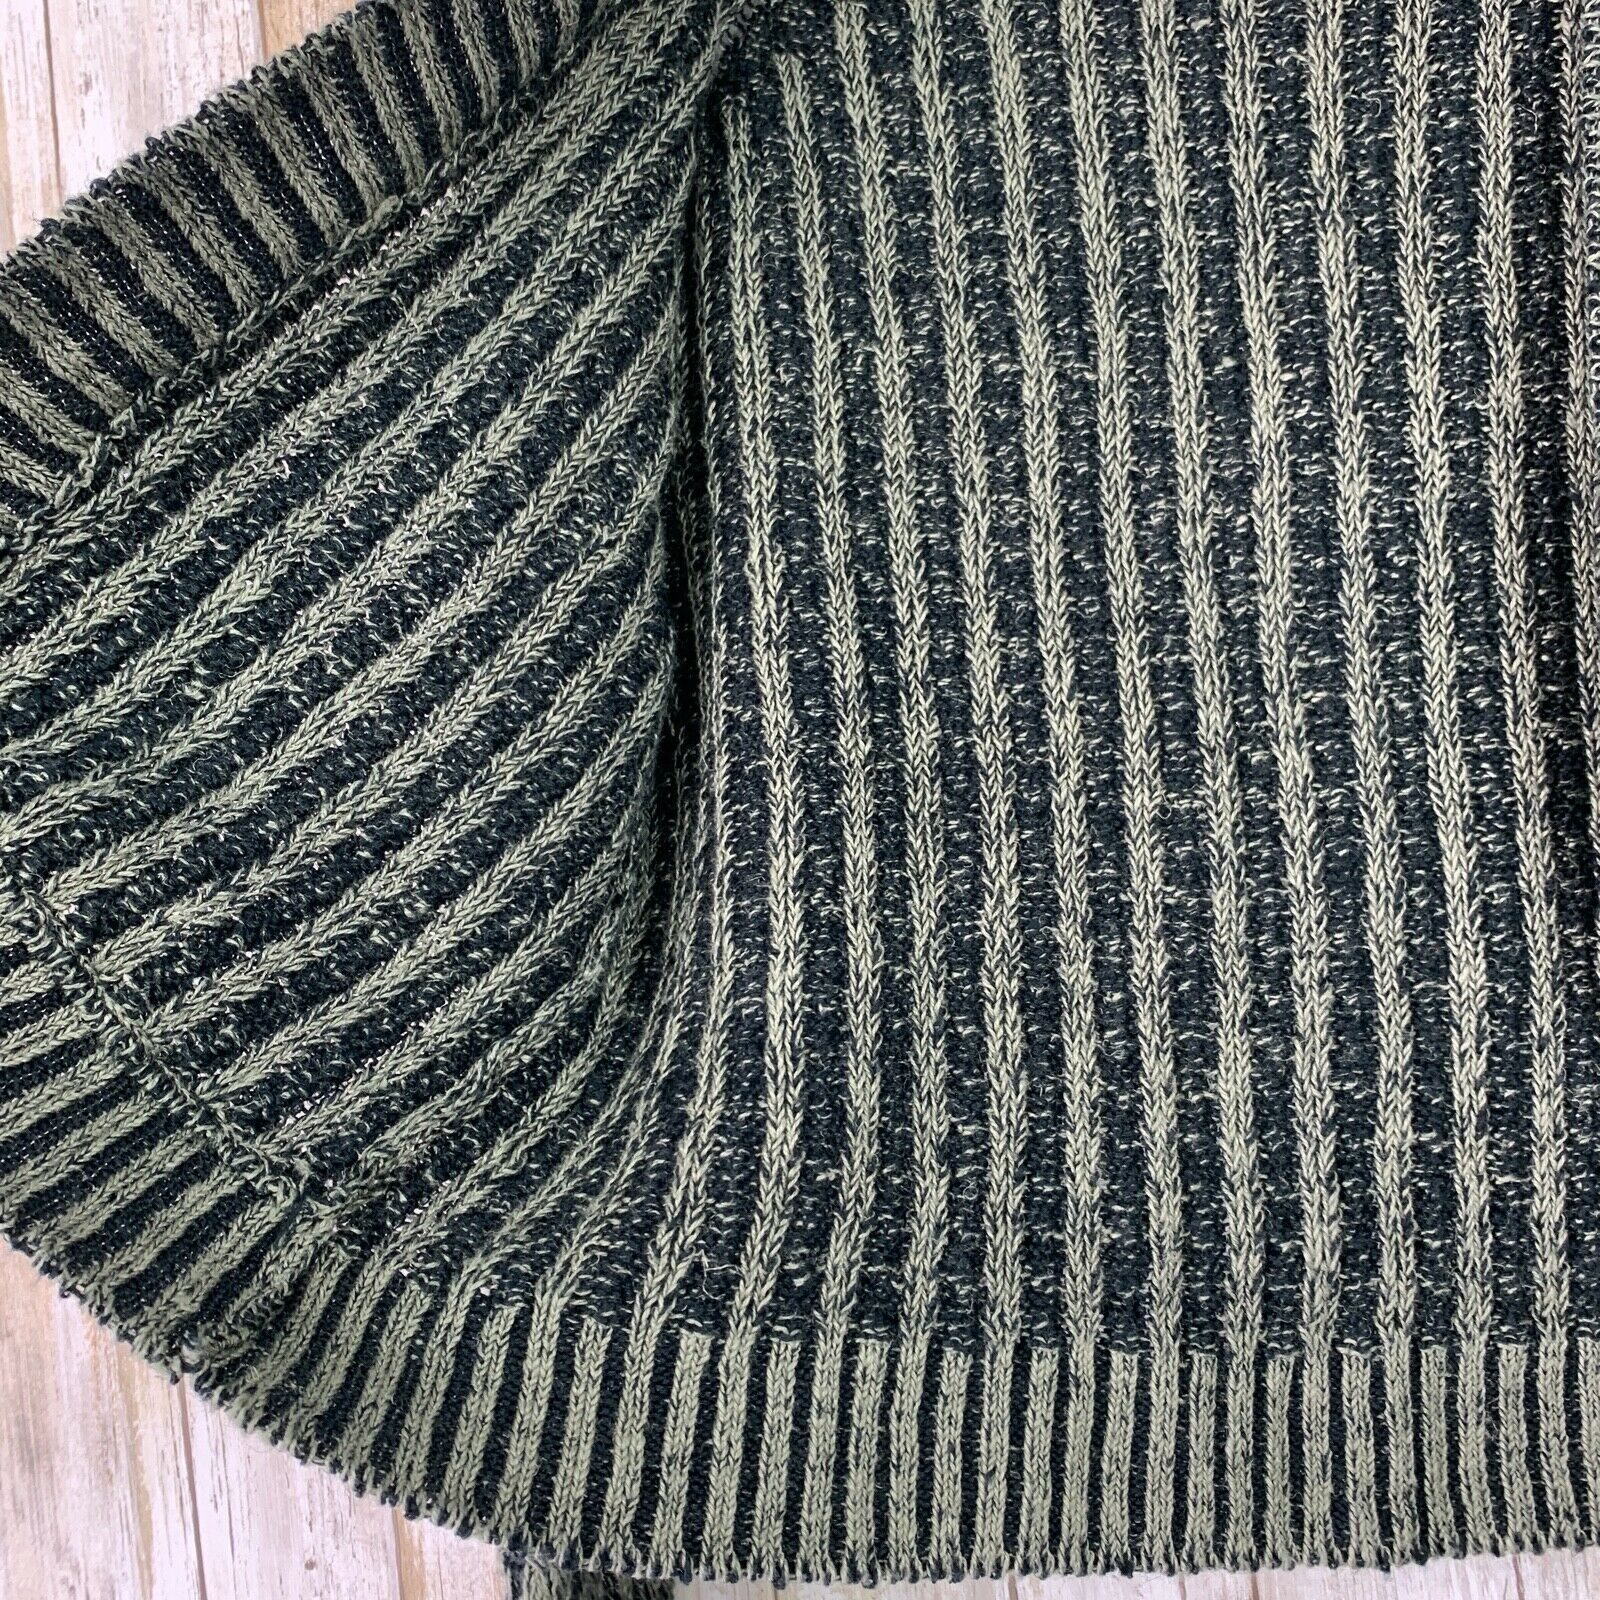 Inis Meain Linen Loose Knit Open Sweater Green Gr… - image 4